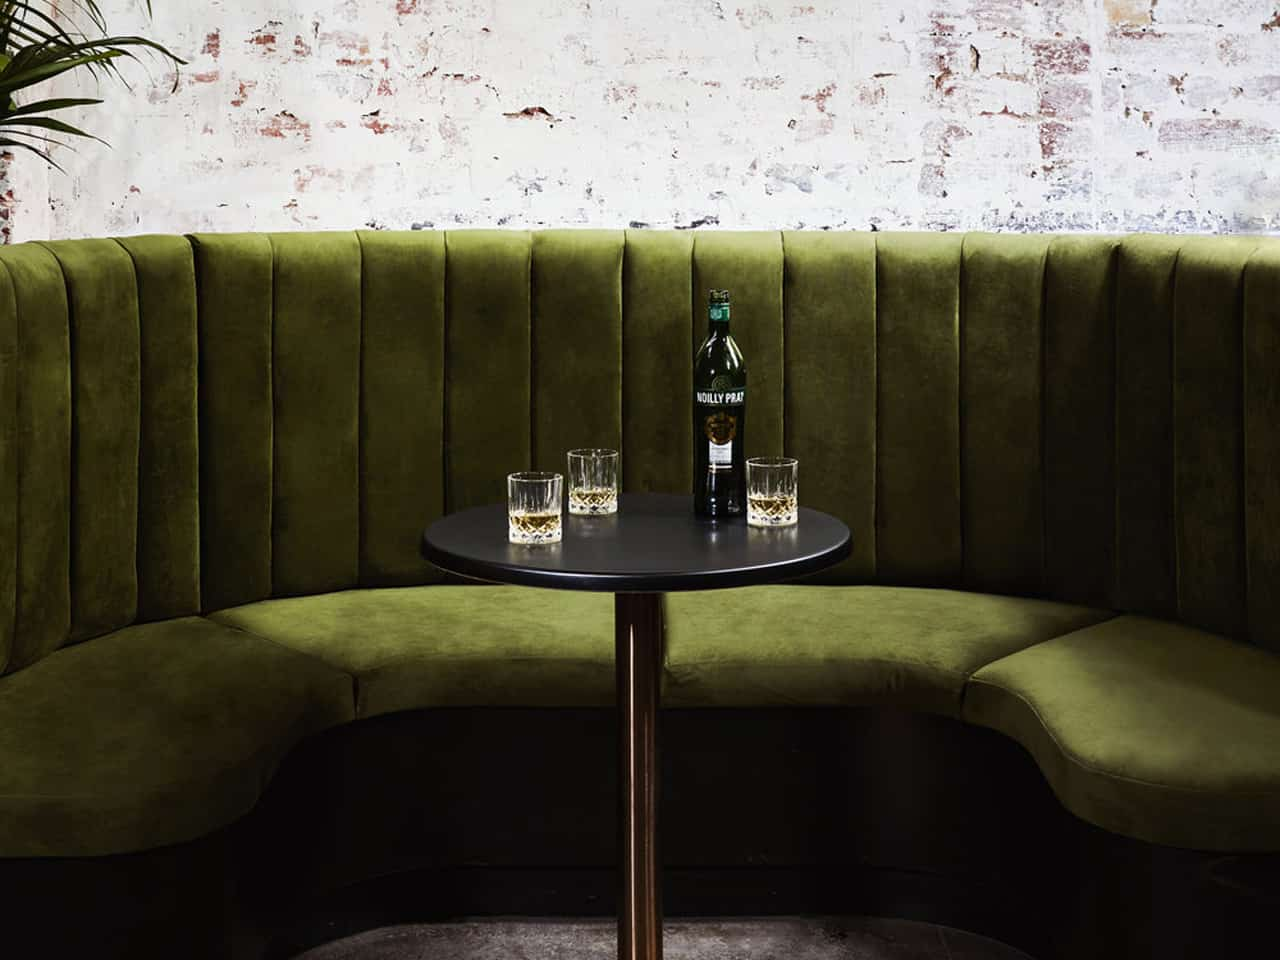 Green sofa with round table and whiskey bottle against brick white washed wall